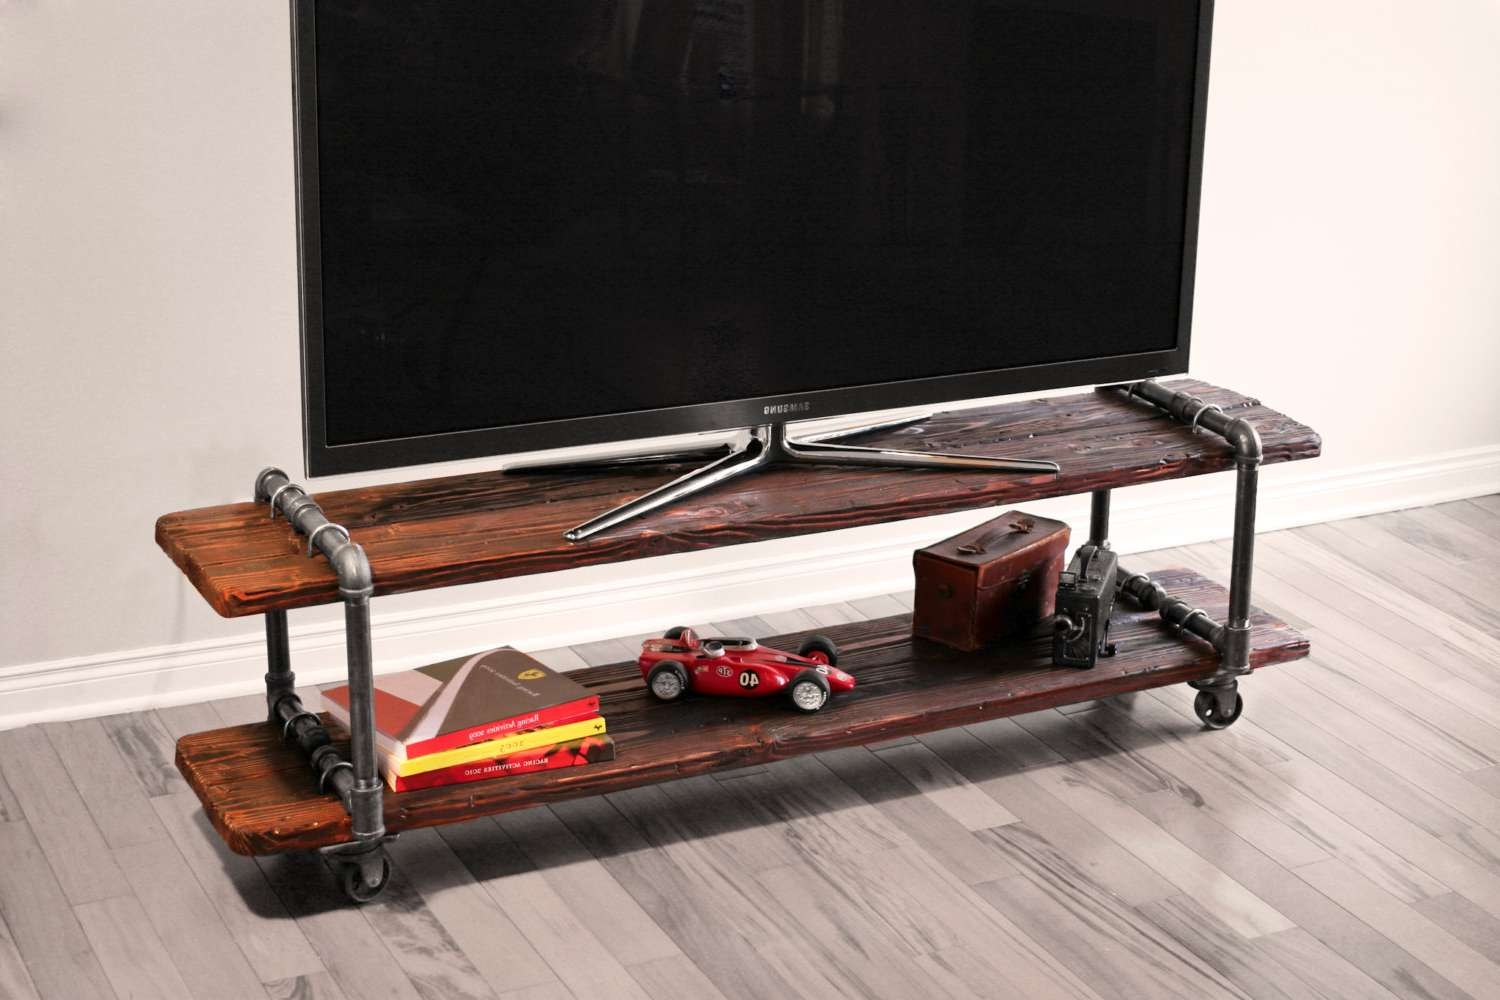 Cool Diy Portable Industrial Tv Stands Made From Pipe And With Wooden Tv Stands With Wheels (View 4 of 15)